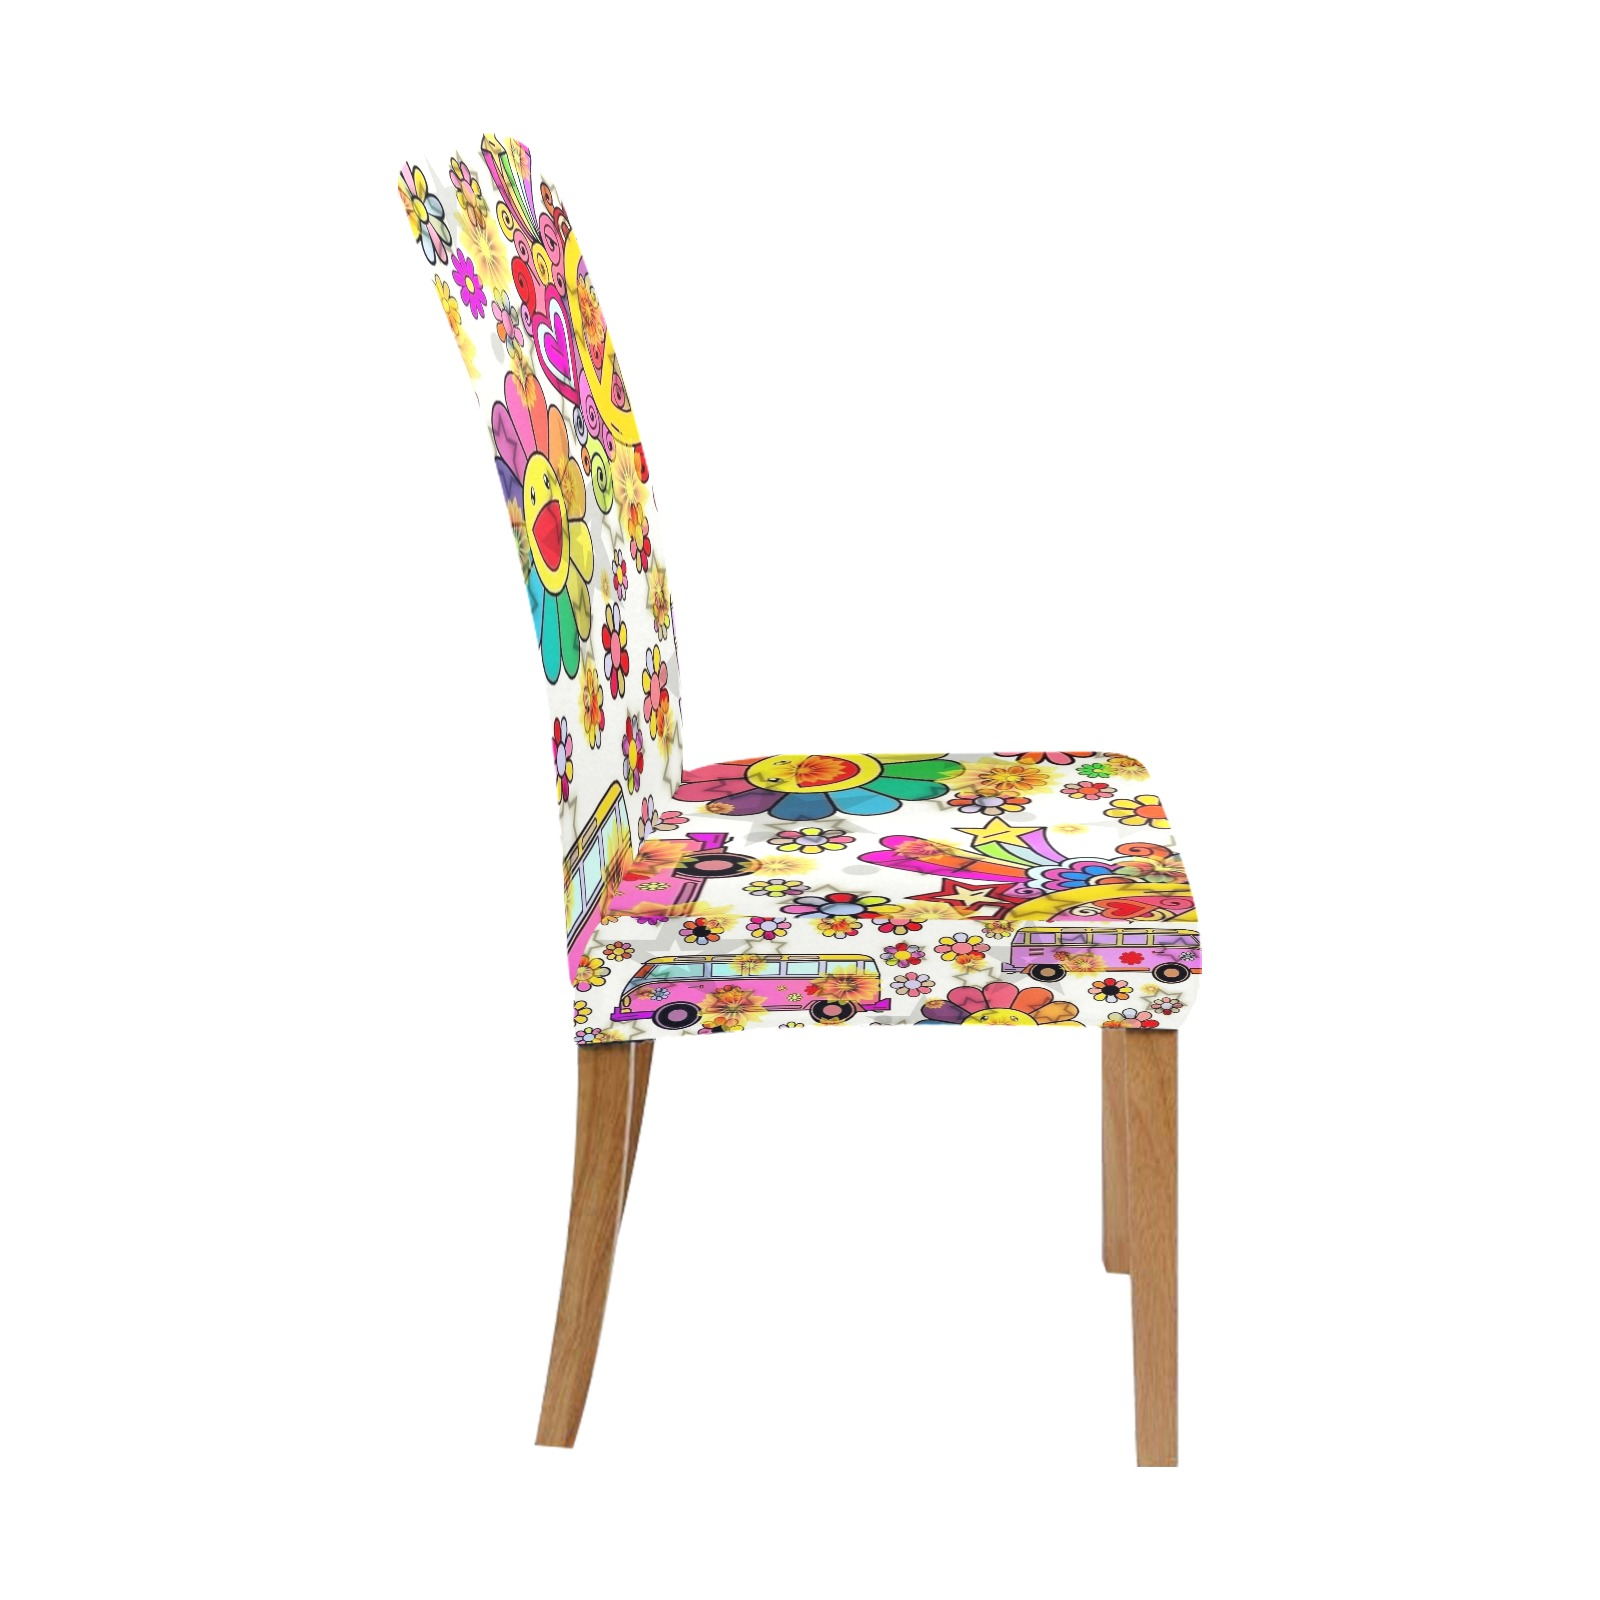 Flower Power 70er by Nico Bielow Removable Dining Chair Cover